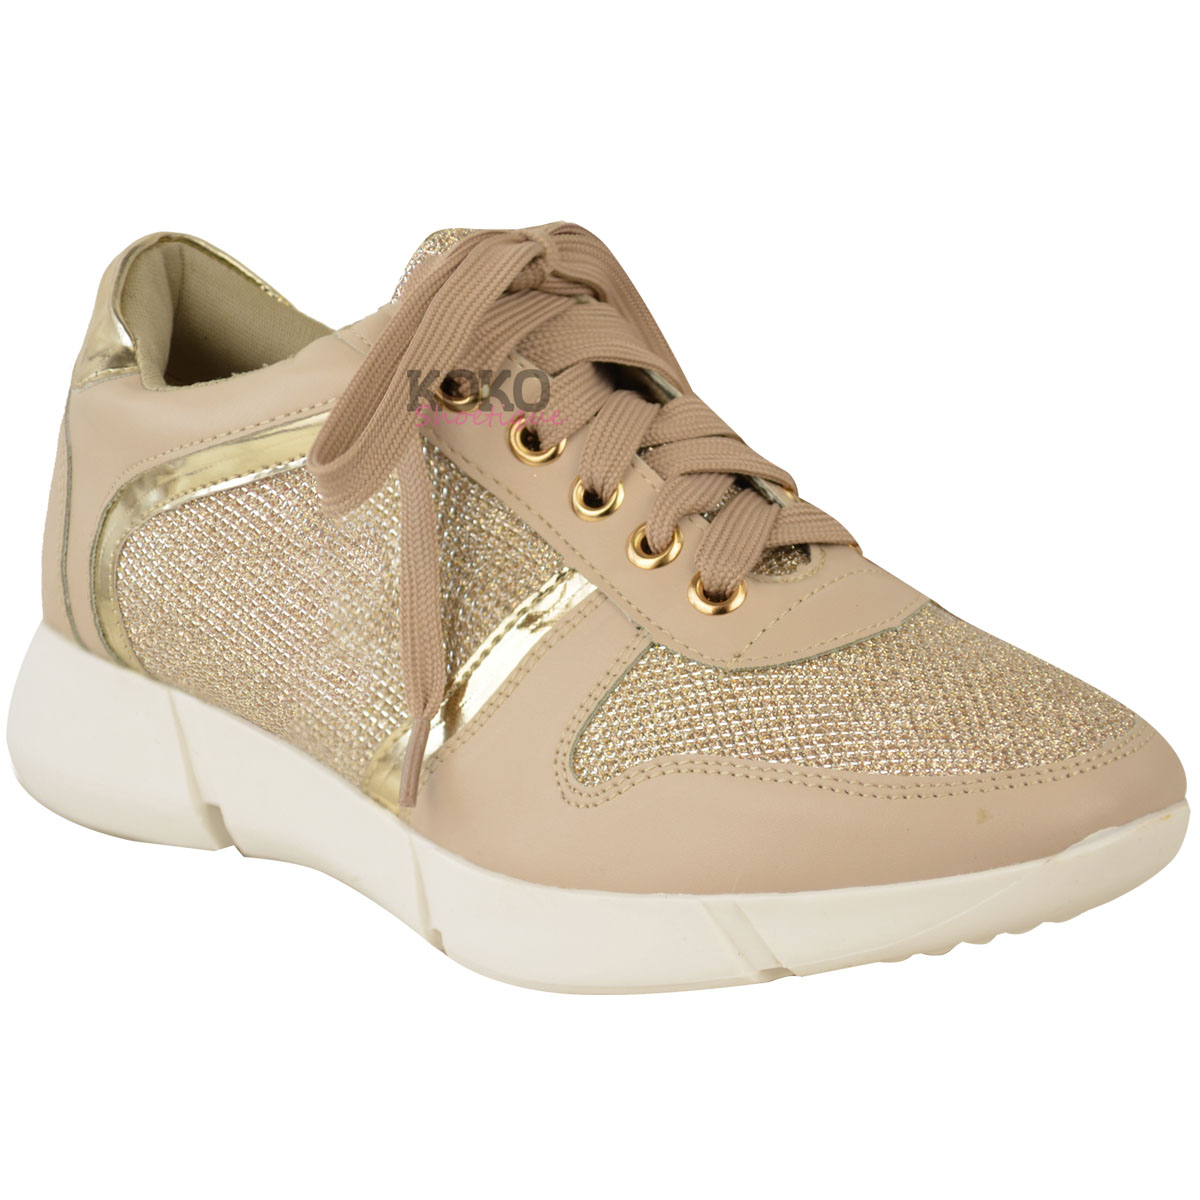 New Womens Ladies Flat Lace Up Trainers Sneakers Sports ...